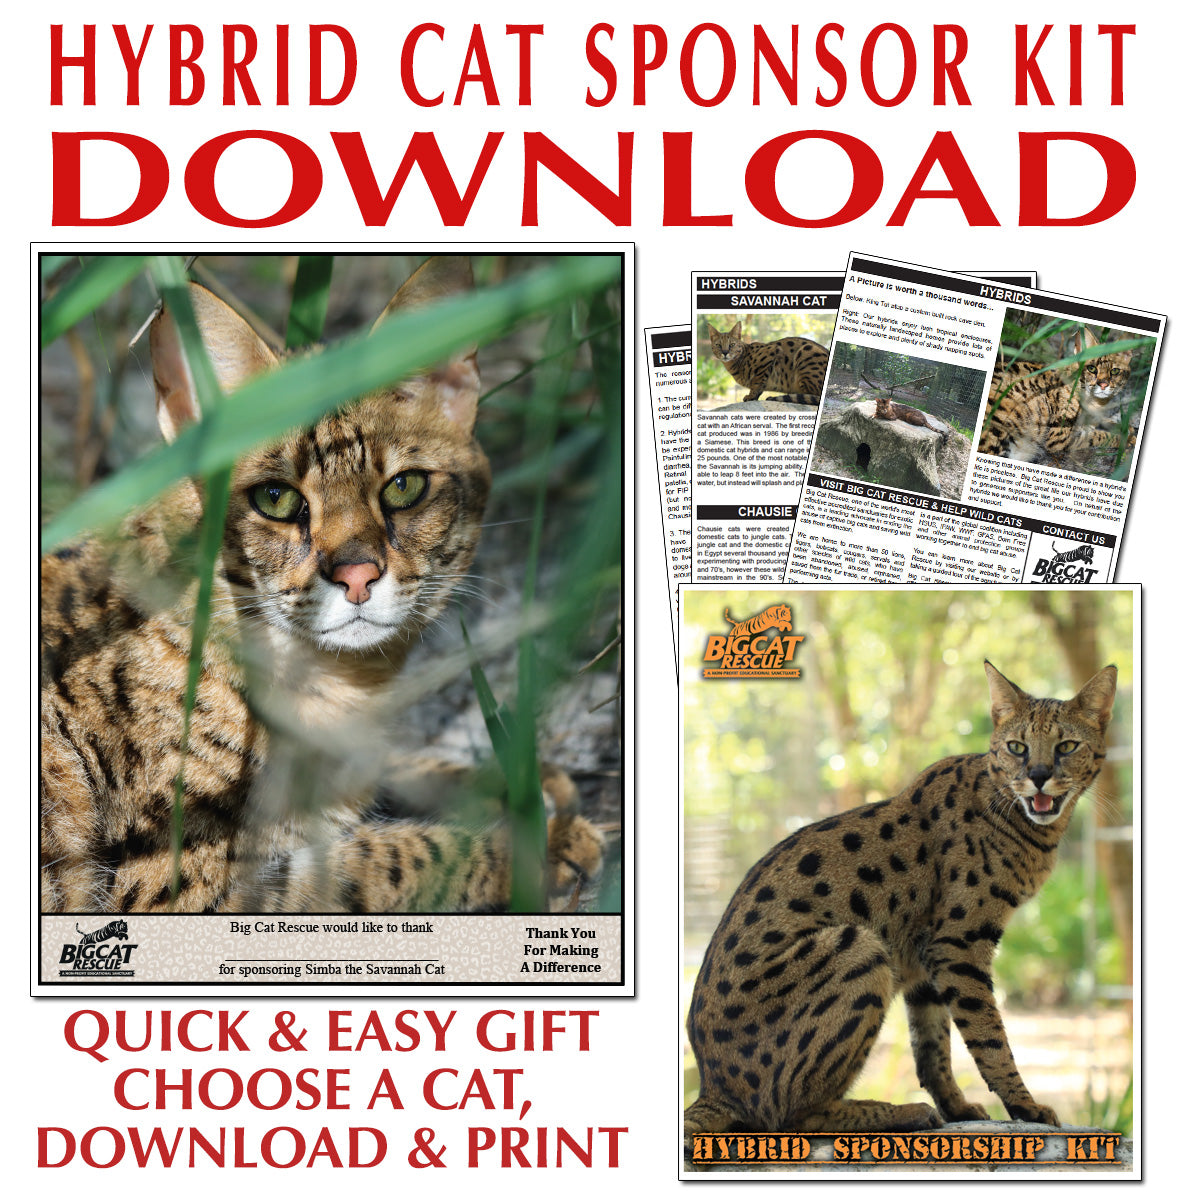 Download - Hybrid Sponsorship